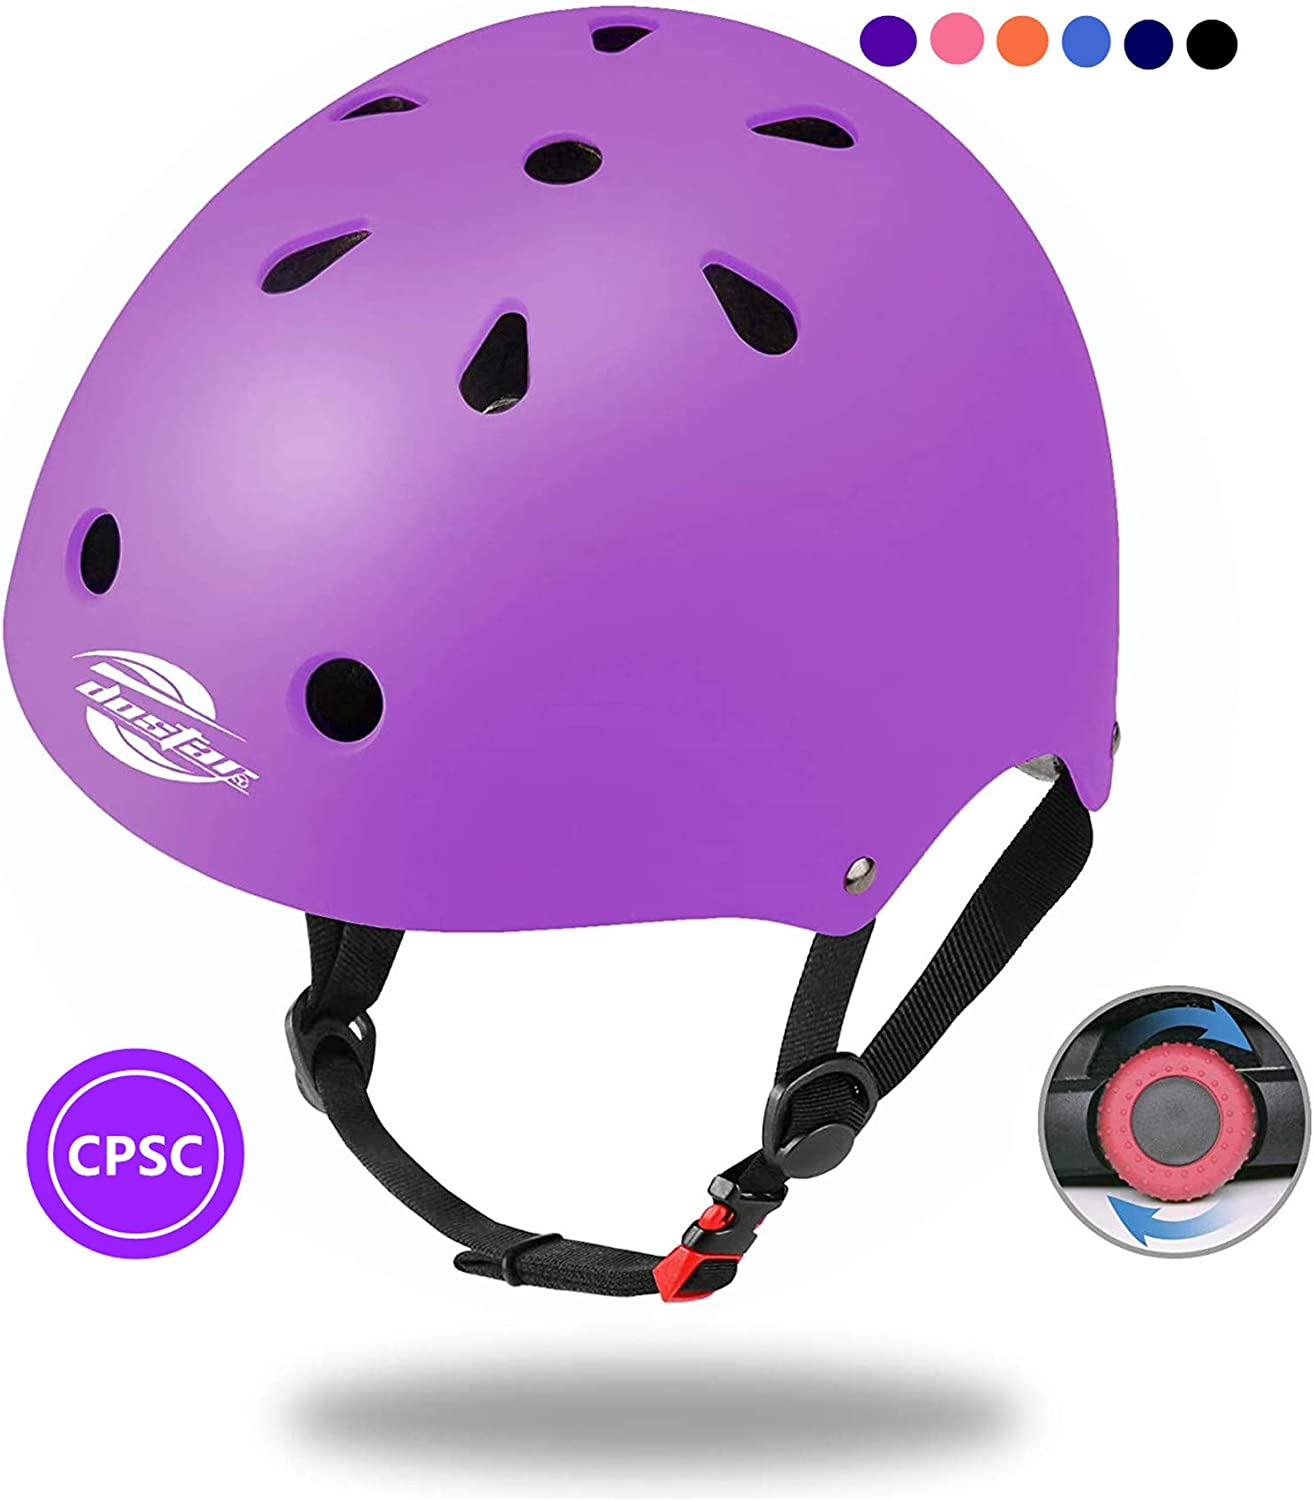 Dostar Kids Bike Helmet Toddler Helmet Adjustable Kids Helmet Ages 3-8 Years Old Boys Girls Multi-Sports Safety Cycling Skating Skateboarding Scooter Helmet - CPSC Certified for Safety